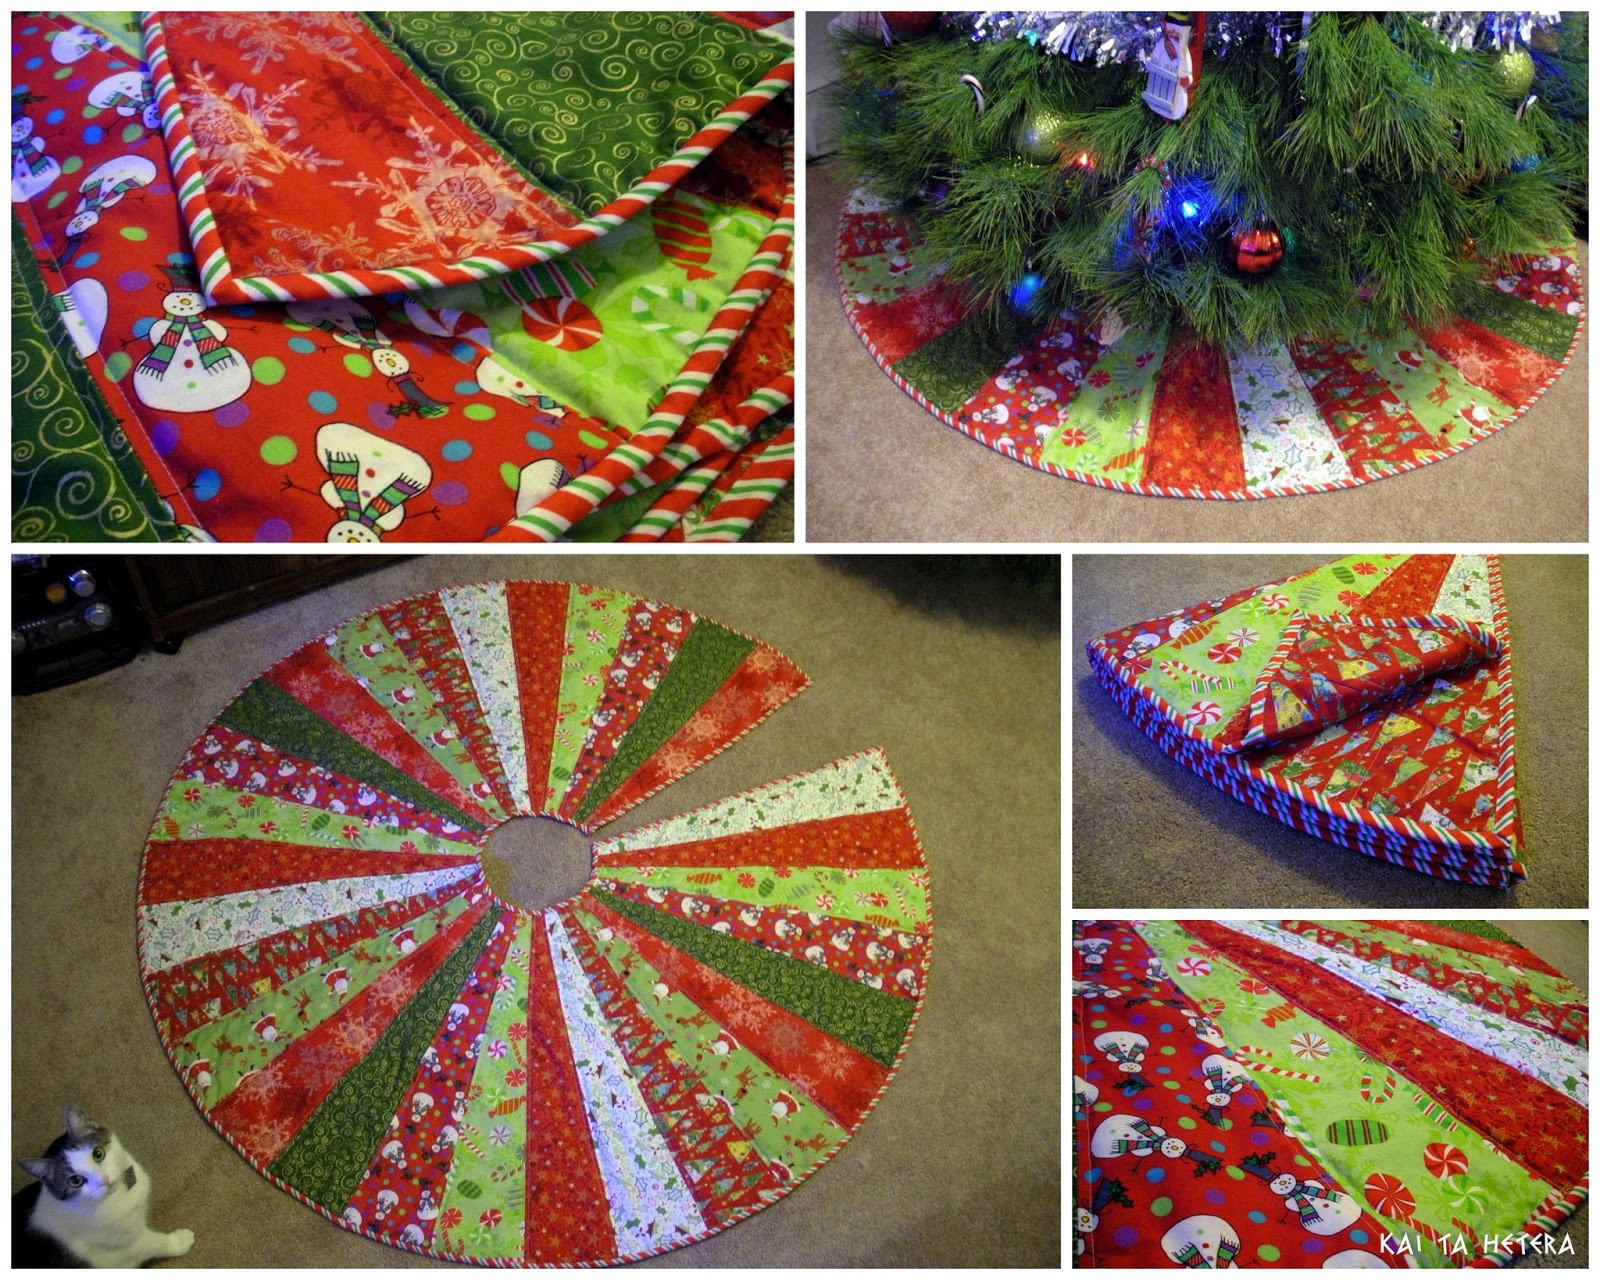 Tree Skirt Pattern Elegant Kai Ta Hetera Quilted Christmas Tree Skirt Of Tree Skirt Pattern Elegant Christmas Goose Tree Skirt & Card Holder